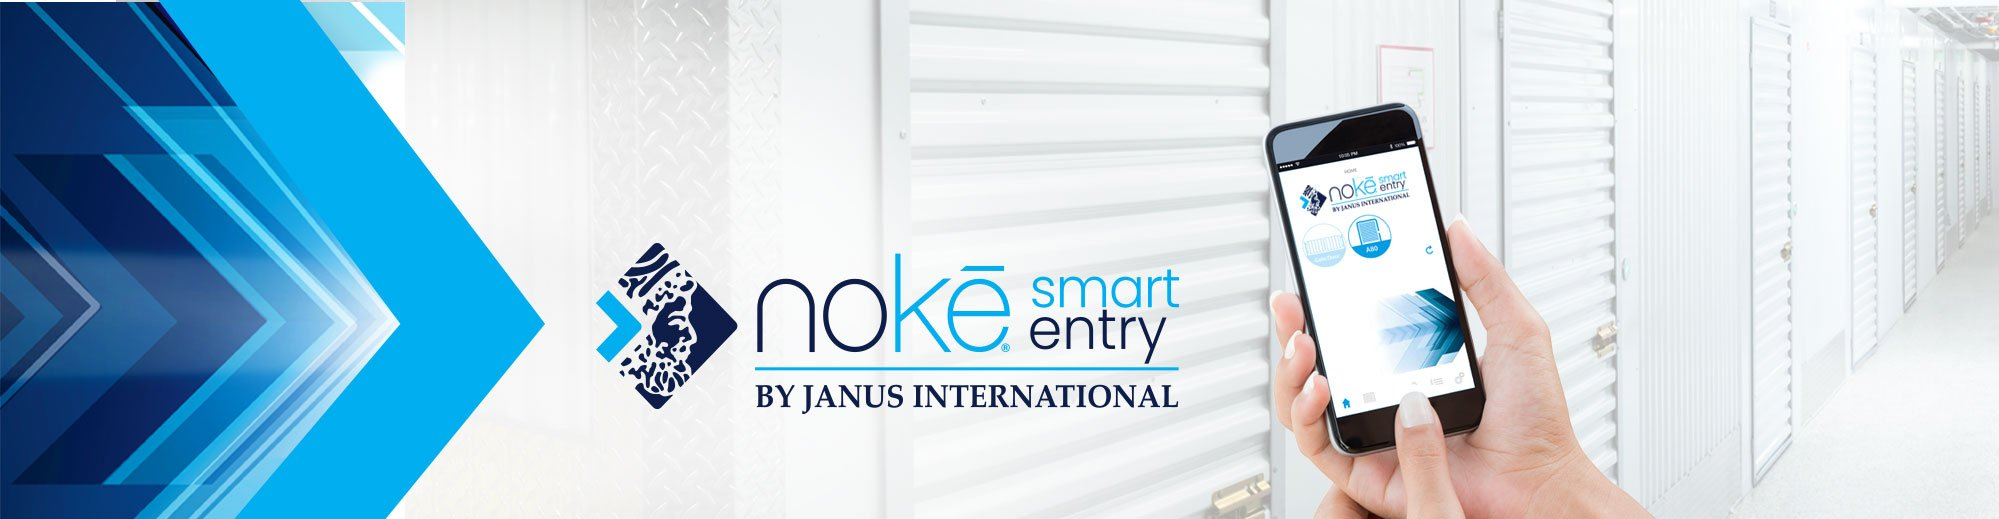 Noke Smart Entry system with storage units in background